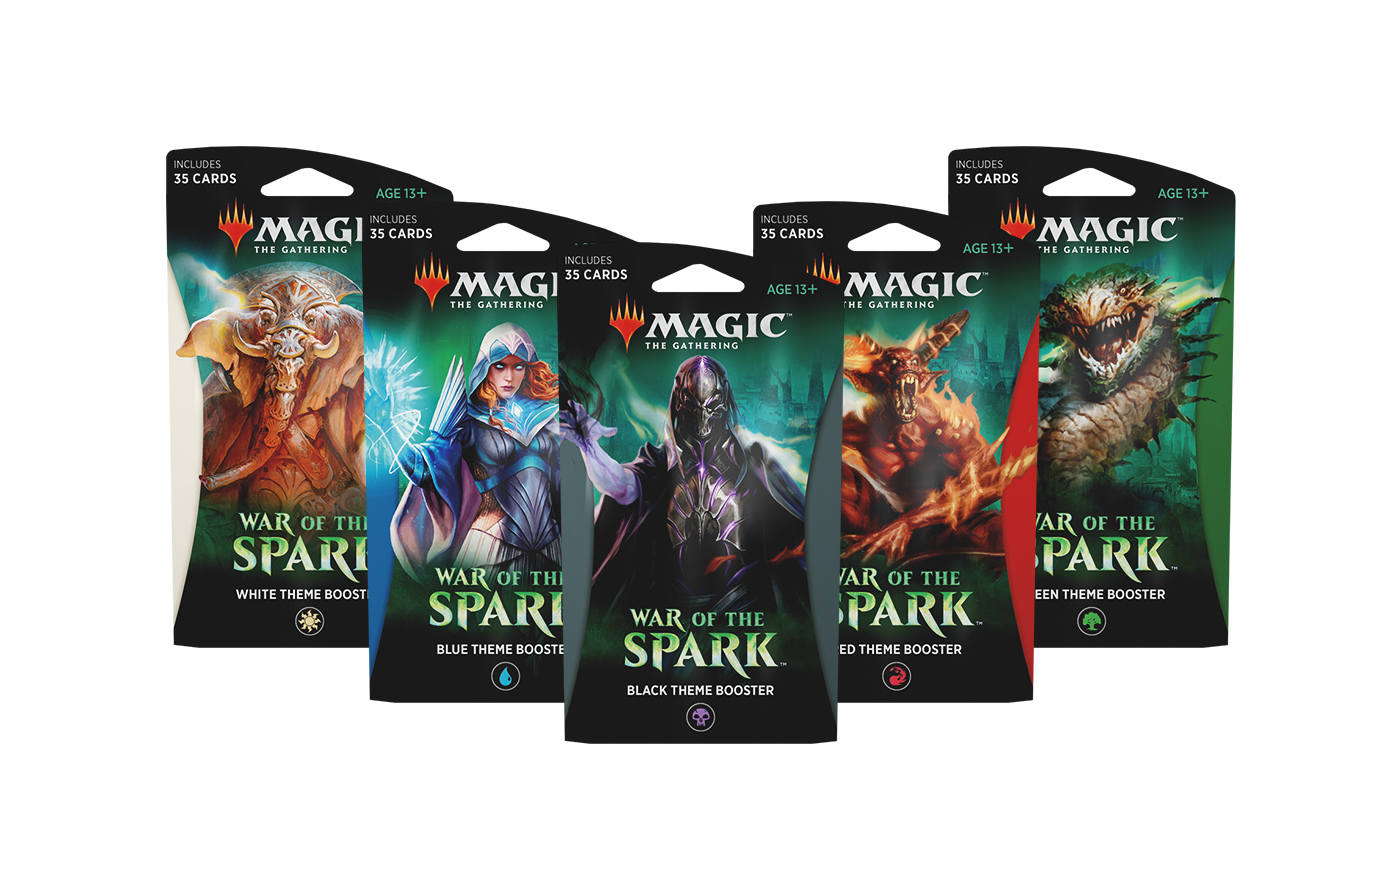 Theme Boosters